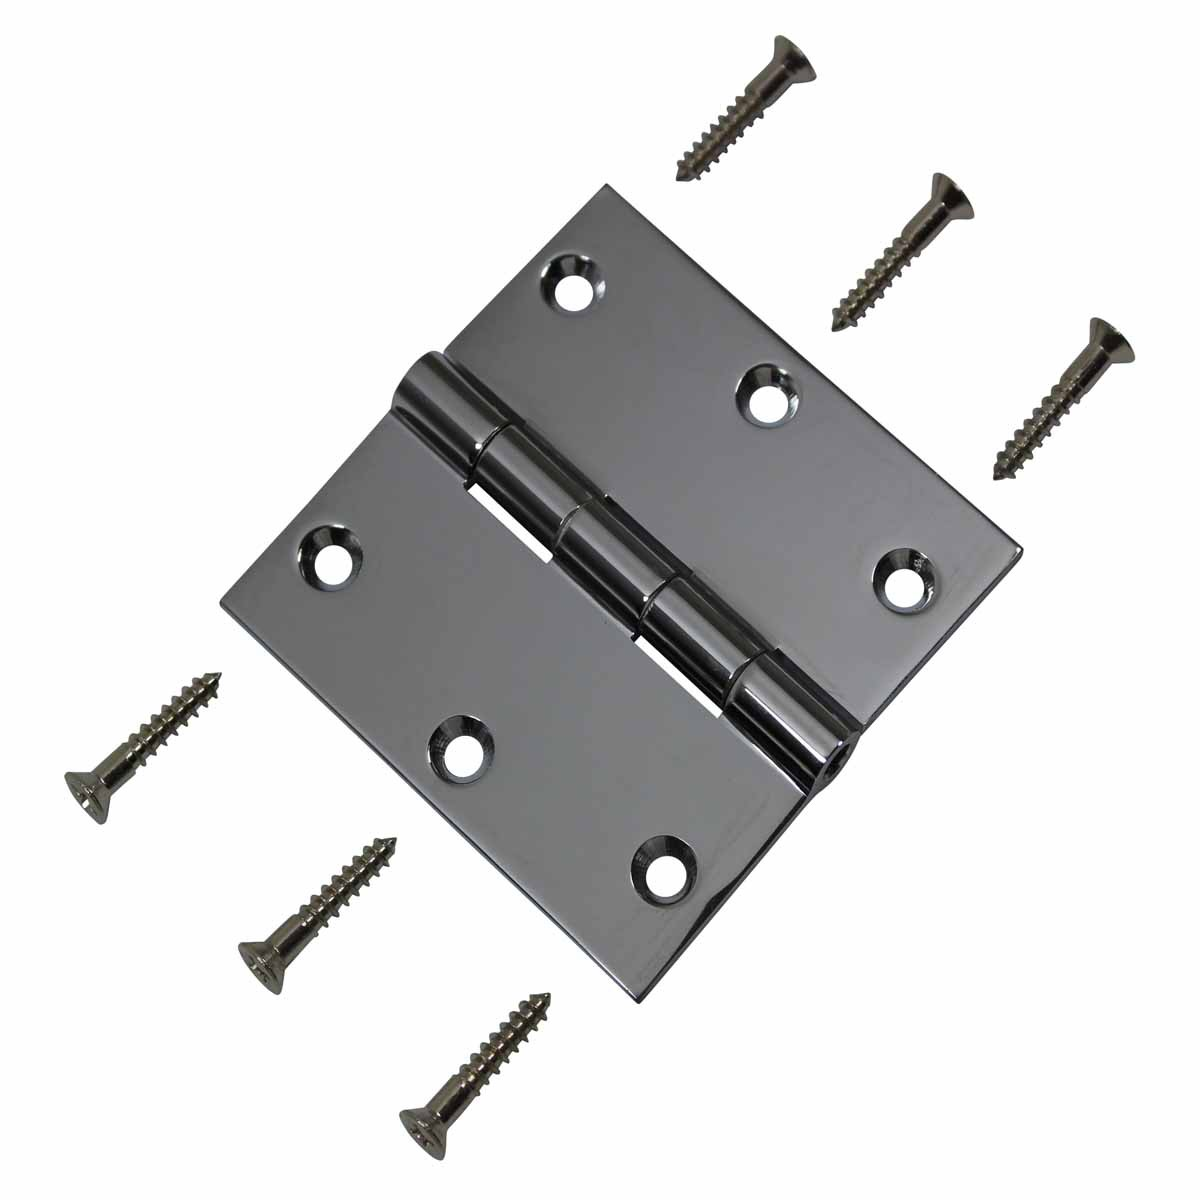 Cabinet Hinges Chrome Solid Brass Square 3 x 3 Door Hinges Door Hinge Solid Brass Hinge